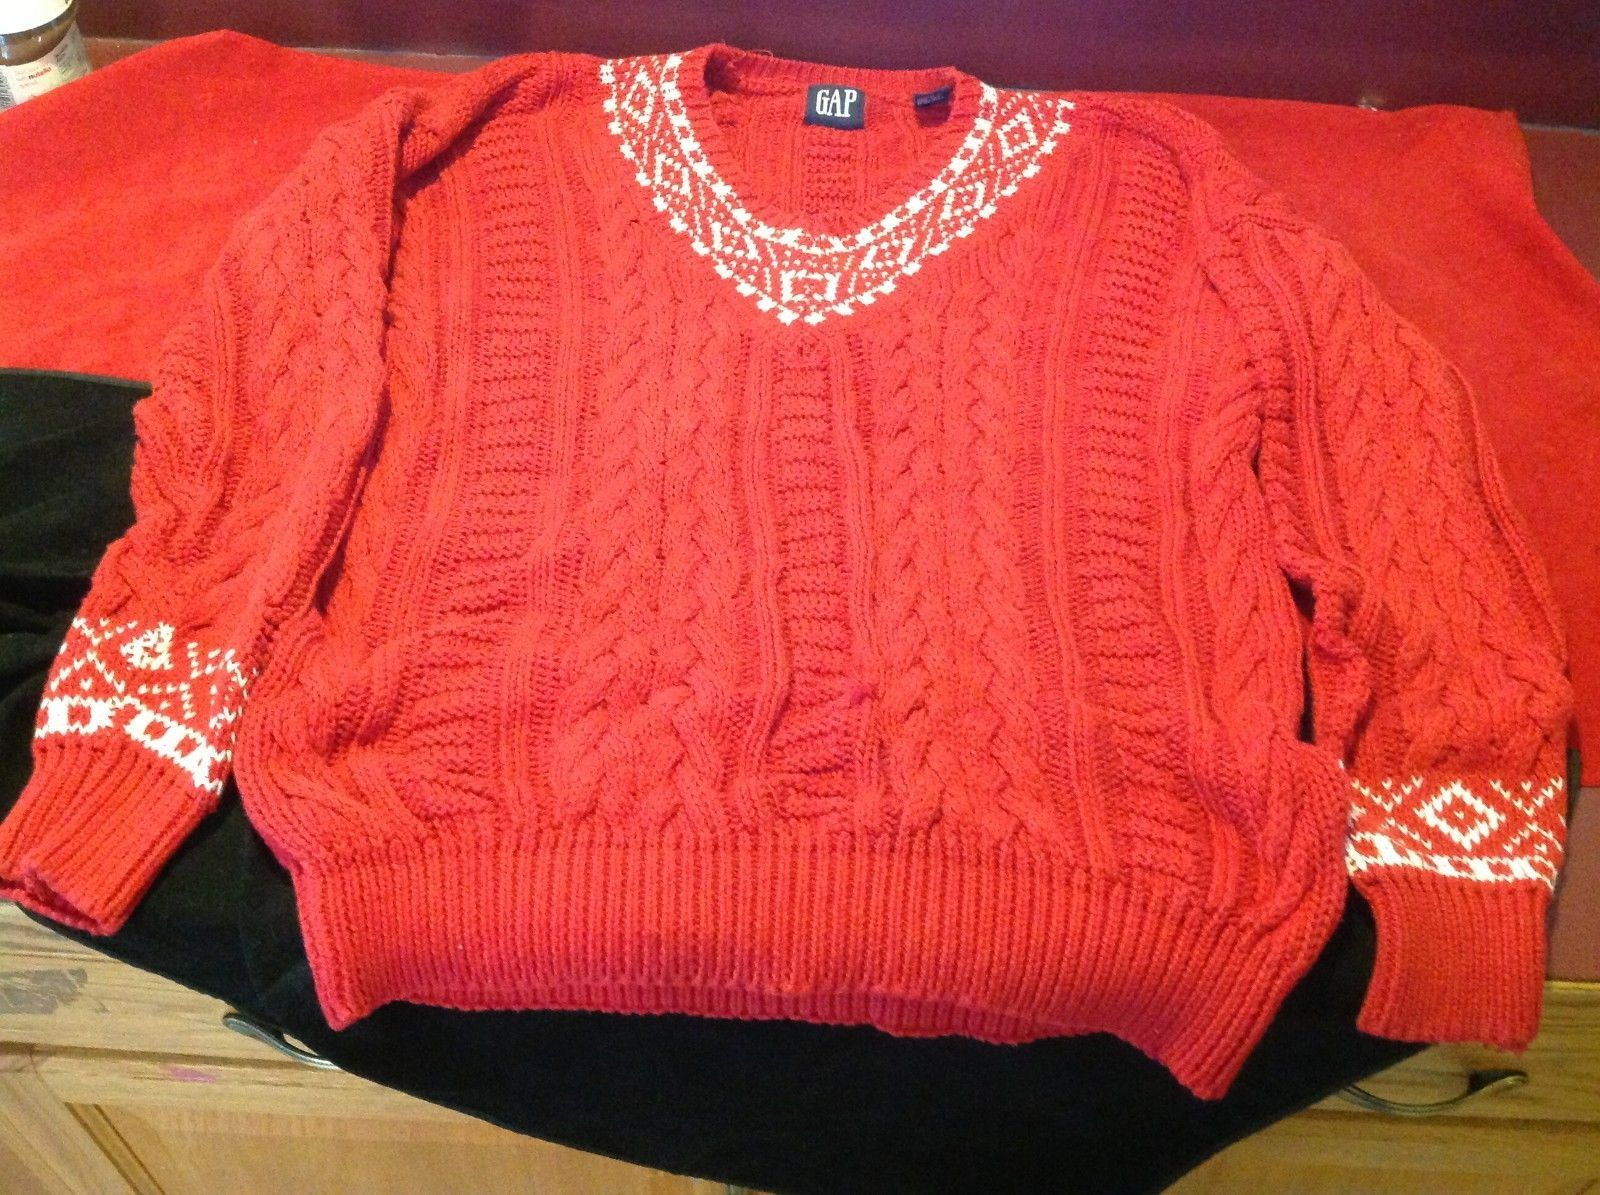 Gap women's red white long sleeve sweater size Large  100 % cotton